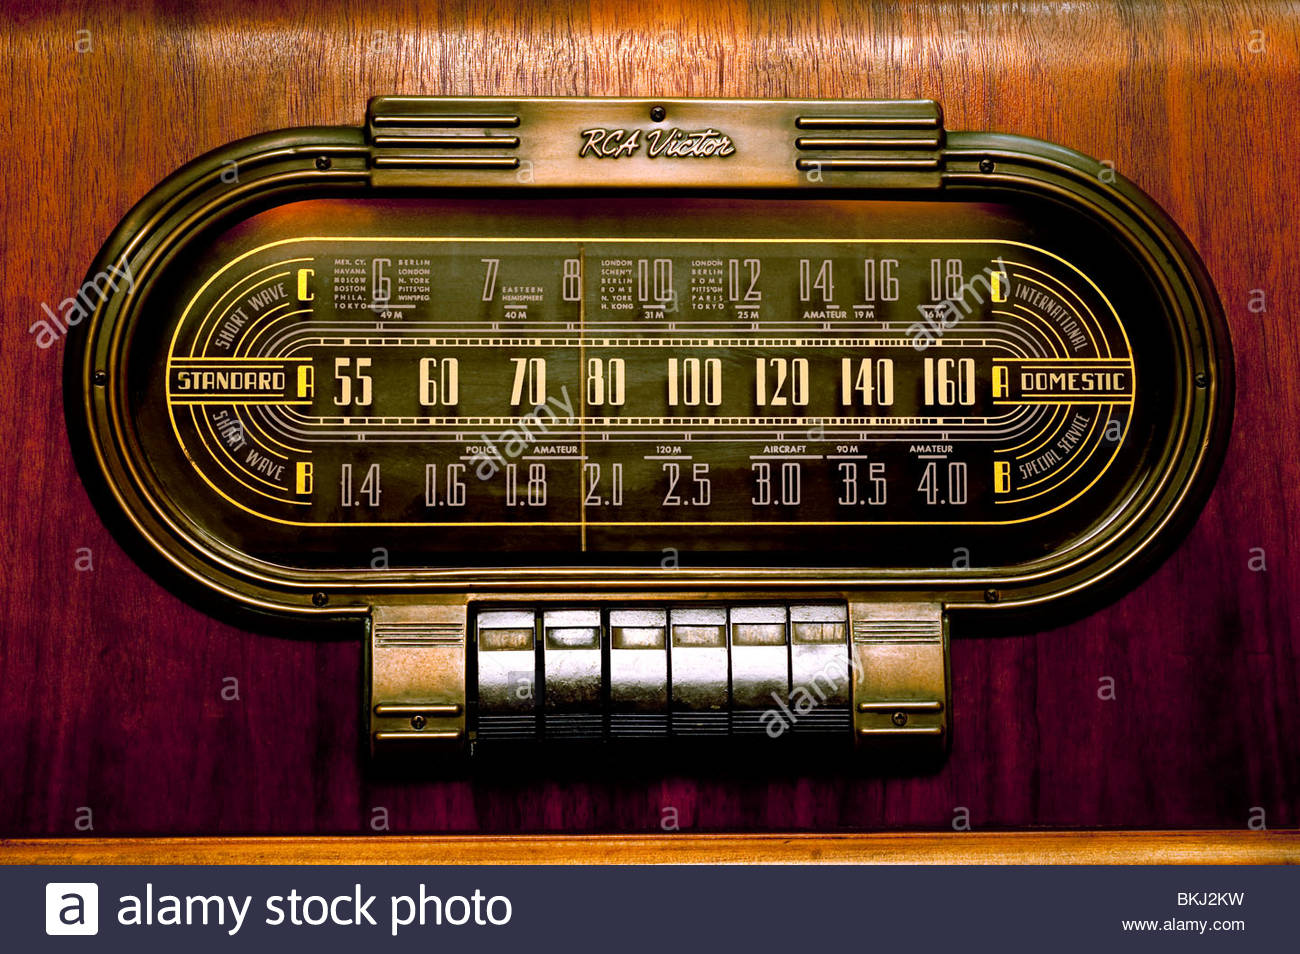 Vintage Antique RCA Radio 1940 Model 19K Short Wave amateur bands beautiful old Antique Close Up of Dial and knobs - Stock Image